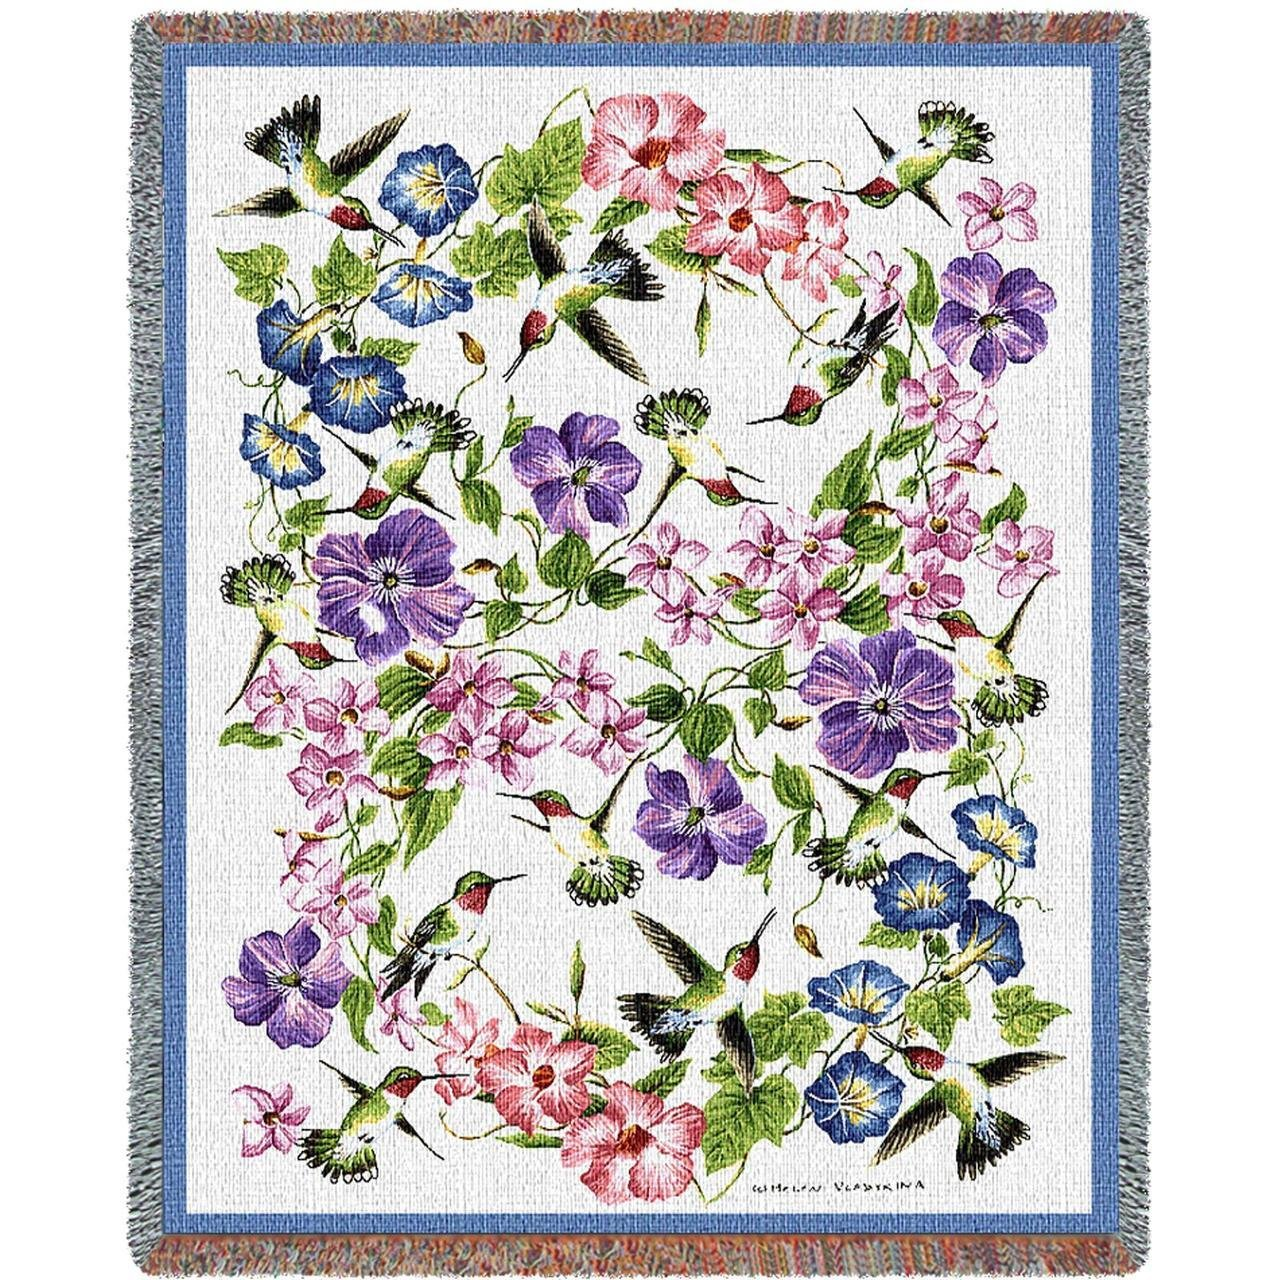 Pure Country Weavers ''Hummingbirds Blanket'' Tapestry Throw by Pure Country Inc. (Image #1)